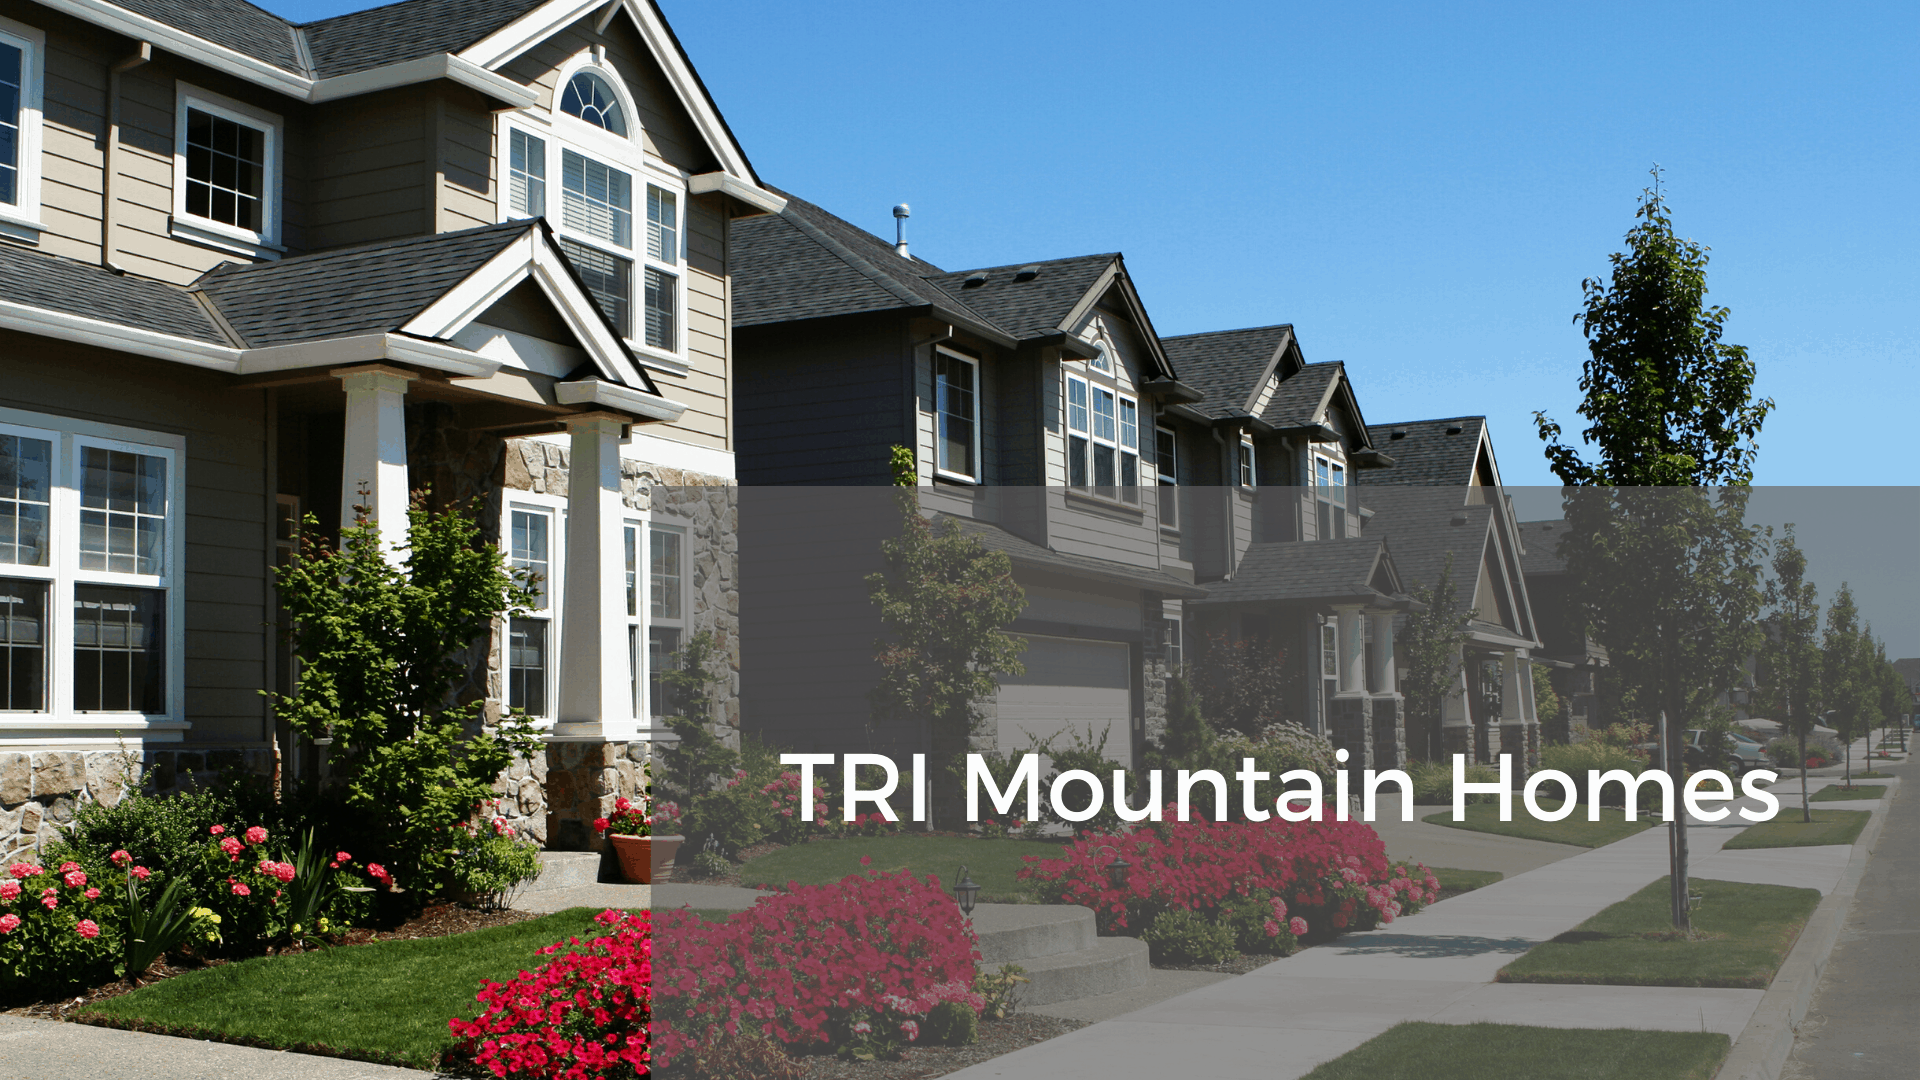 Tri Mountain Homes